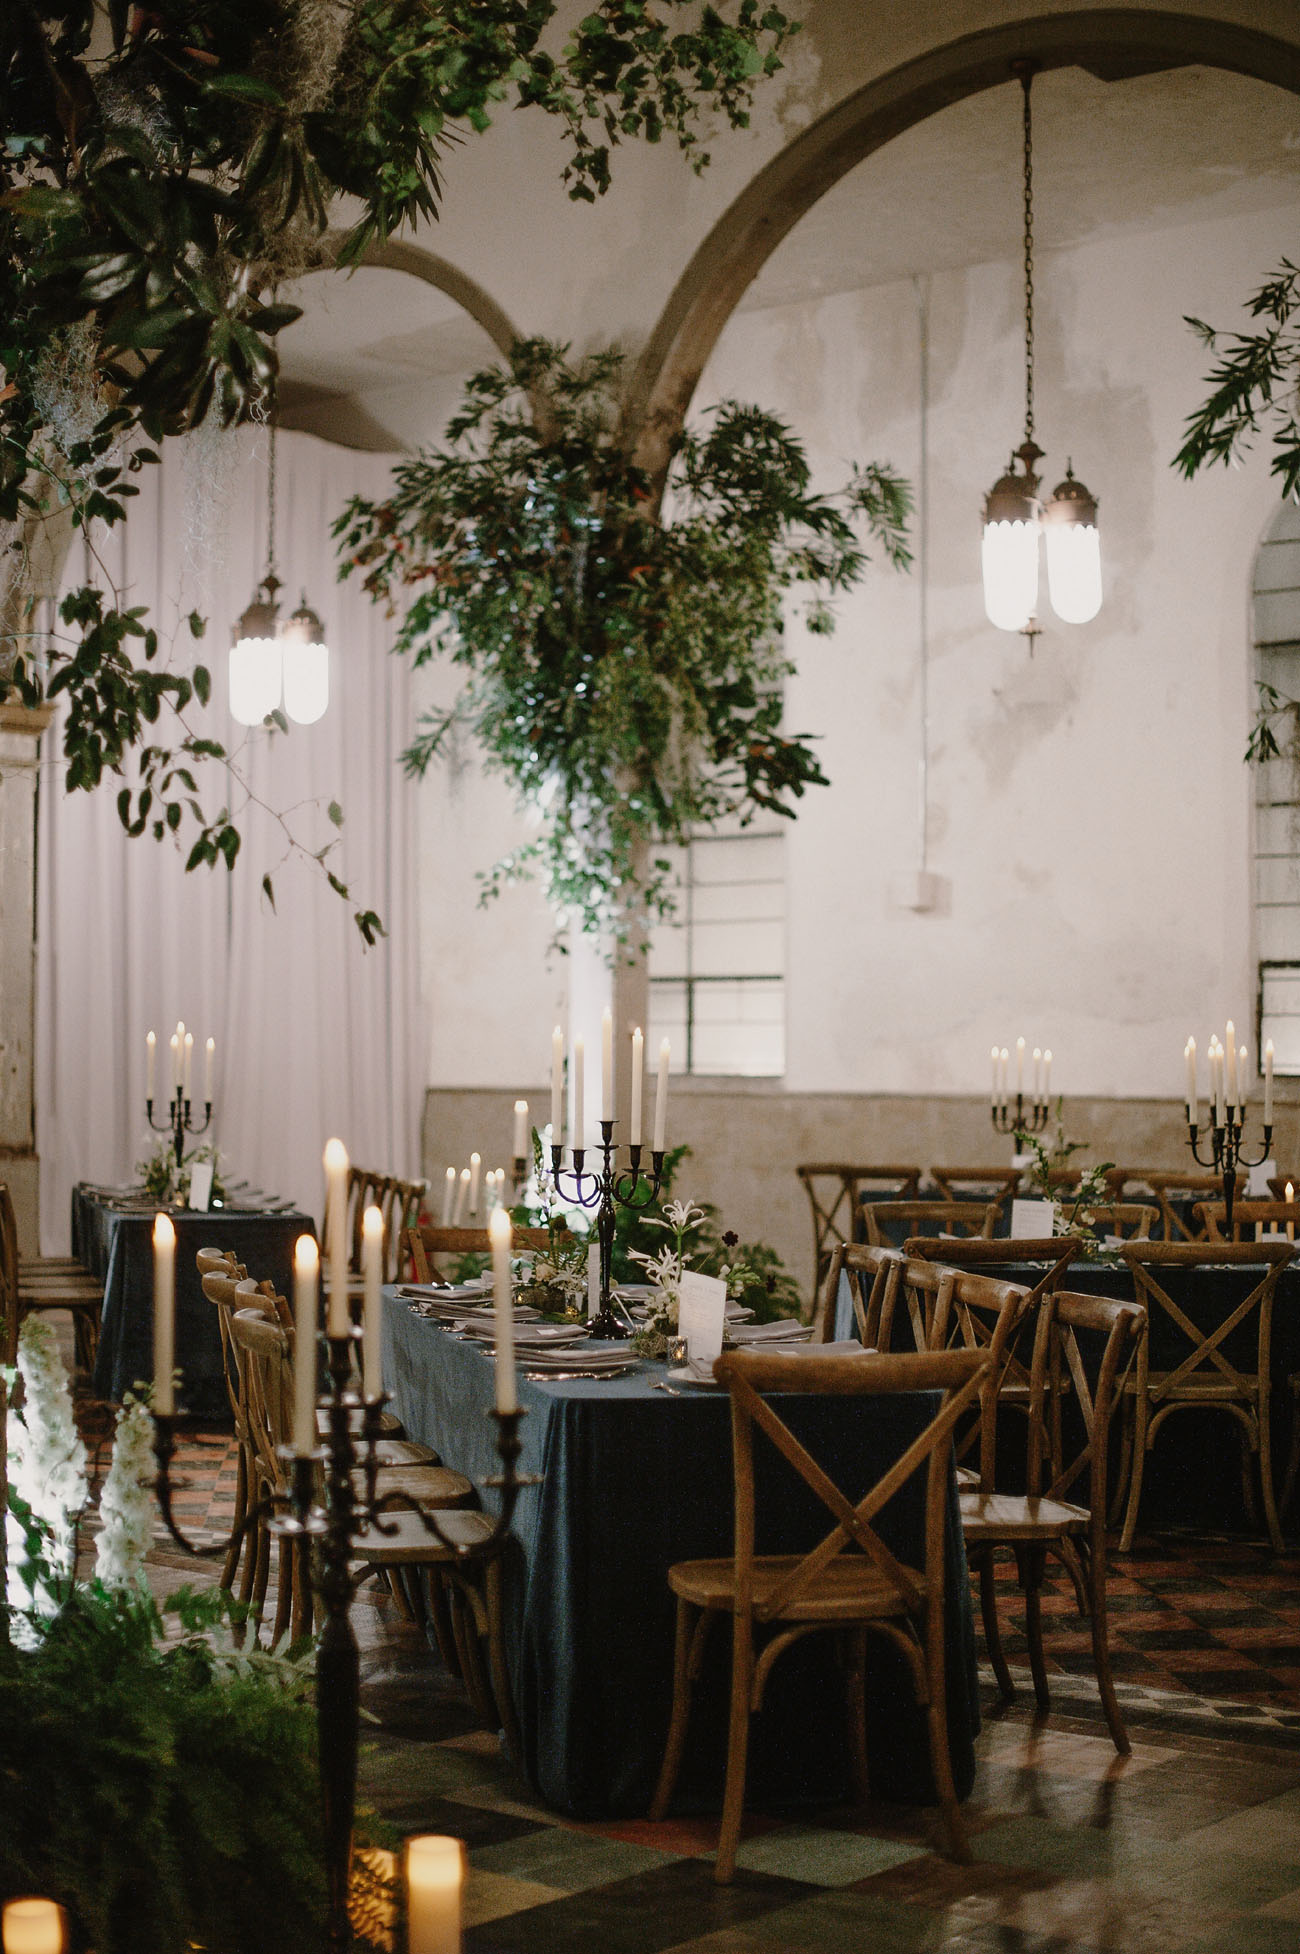 moody masculine wedding decor with hanging greenery